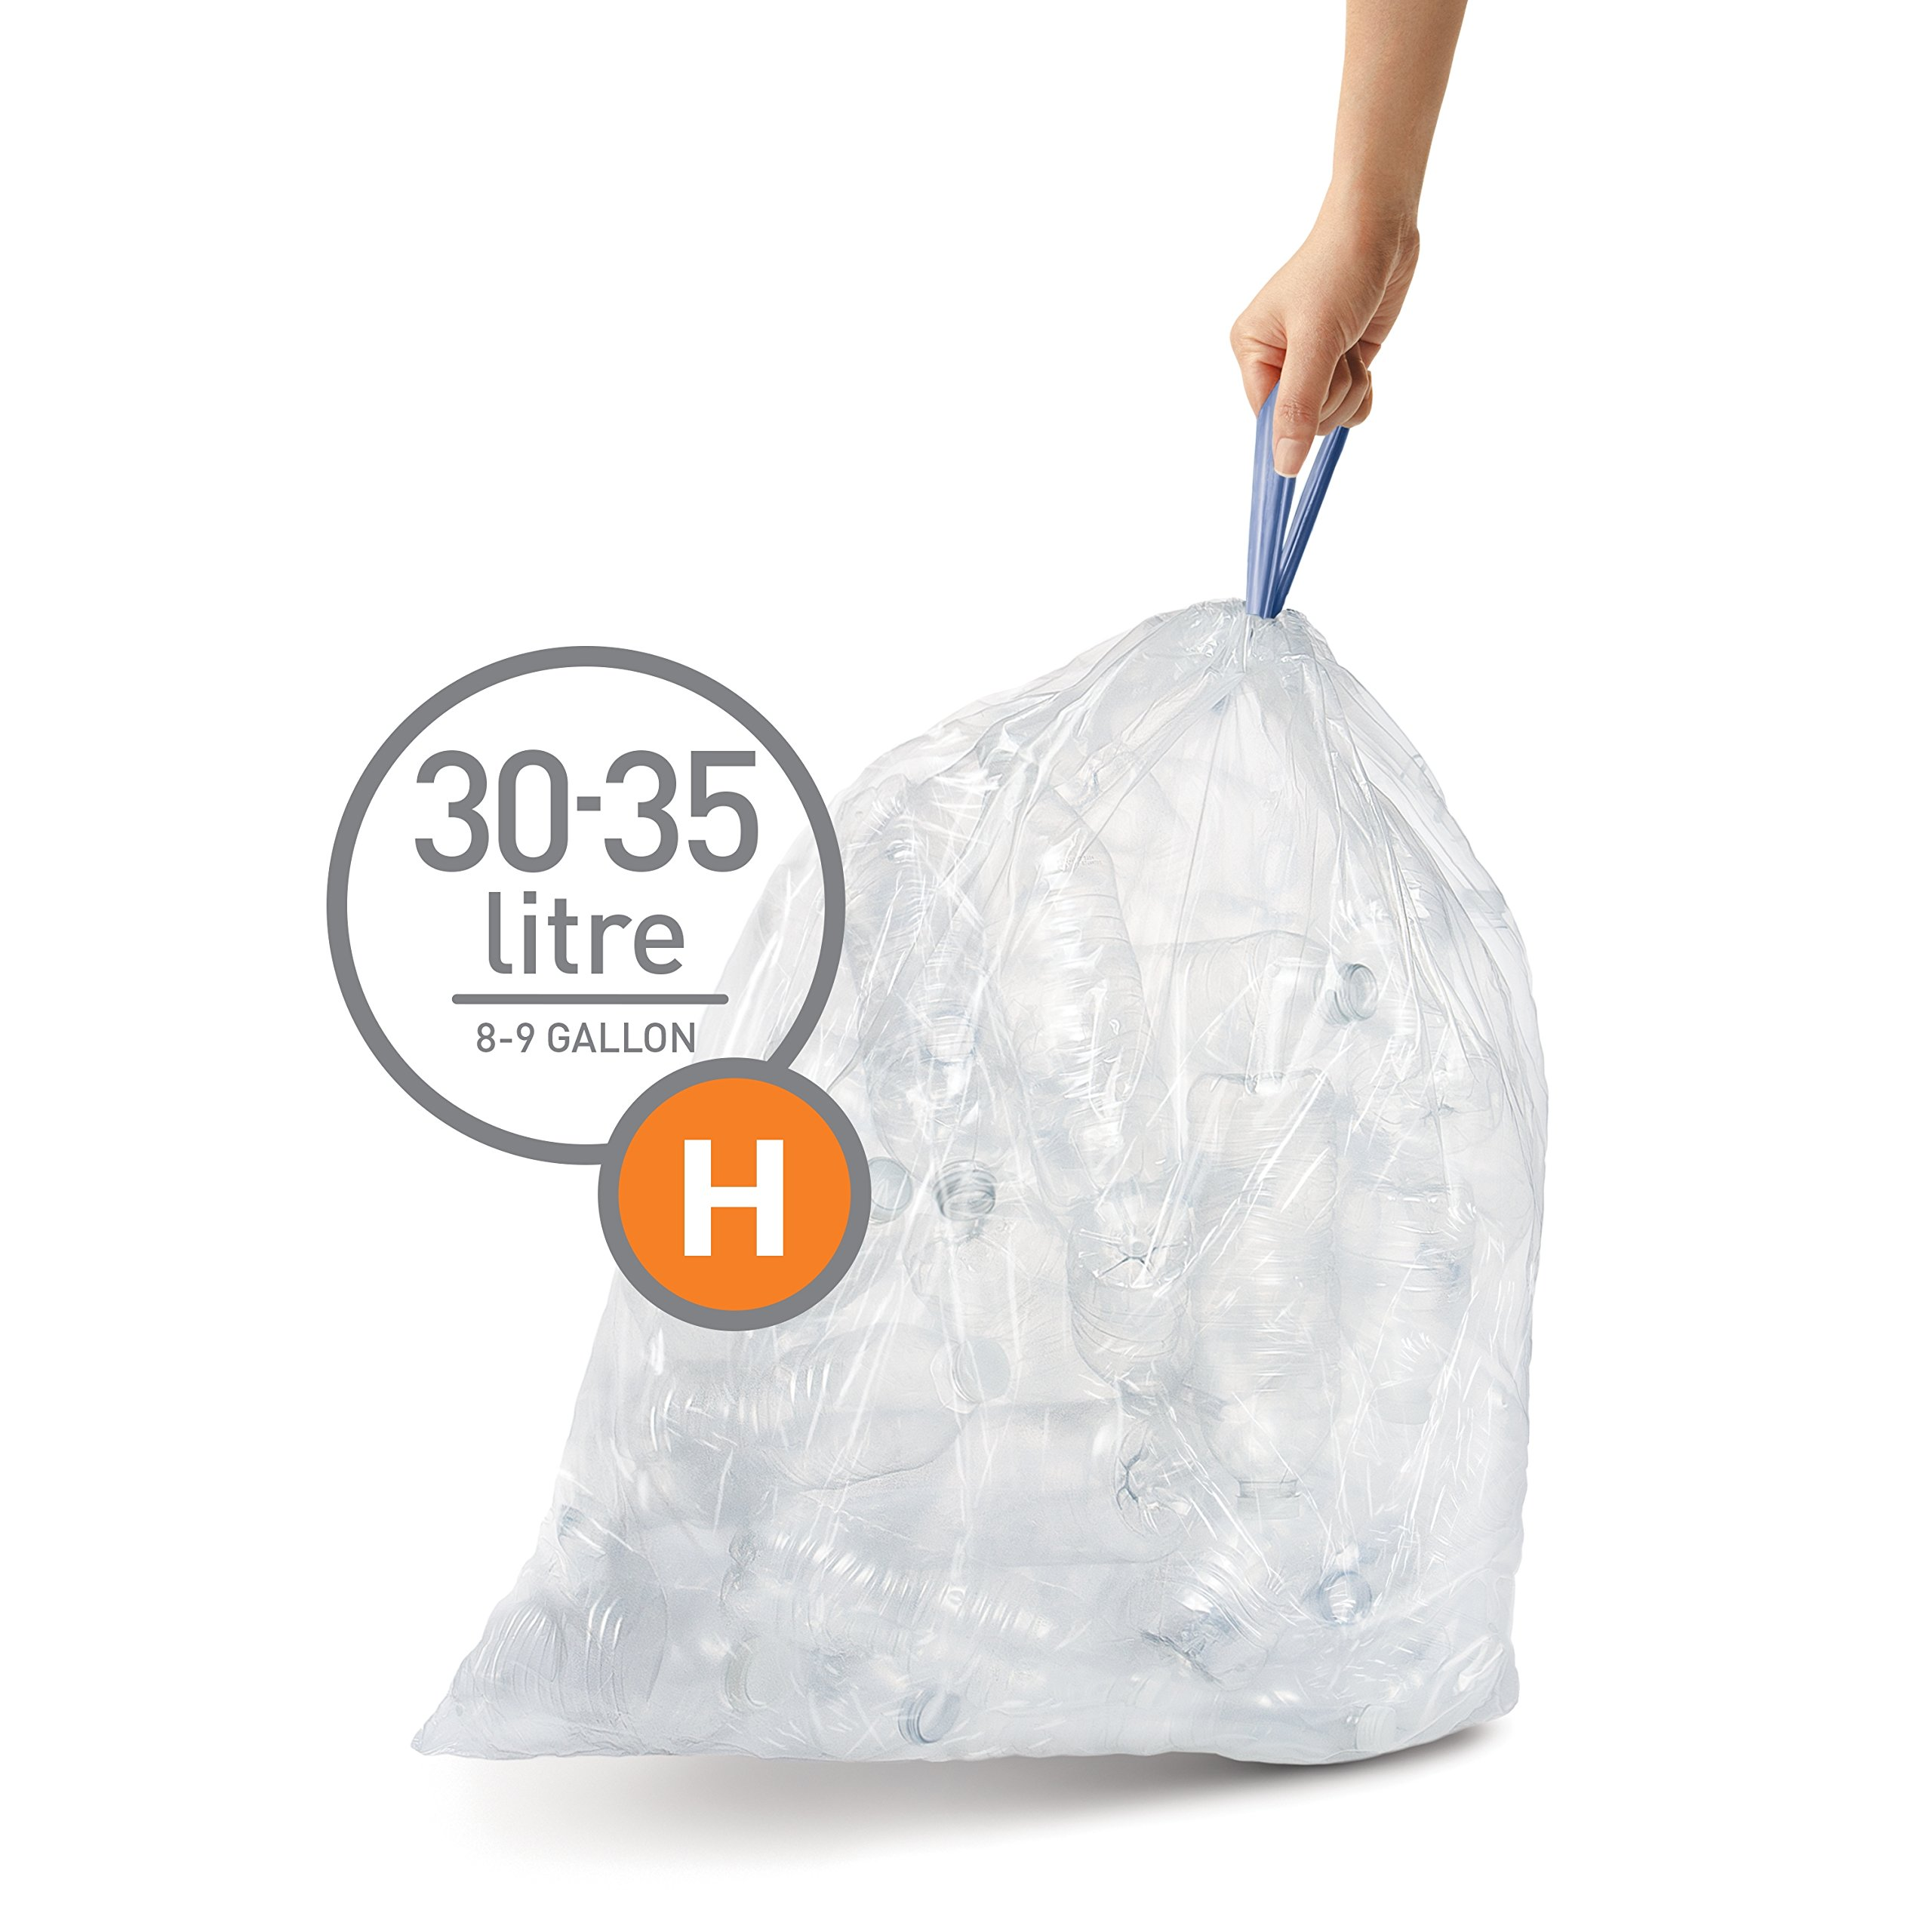 simplehuman Code H Custom Fit Recycling Liners, Drawstring Trash Bags, 30-35 Liter/8-9 Gallon, 12 Refill Packs (240 Count), Clear